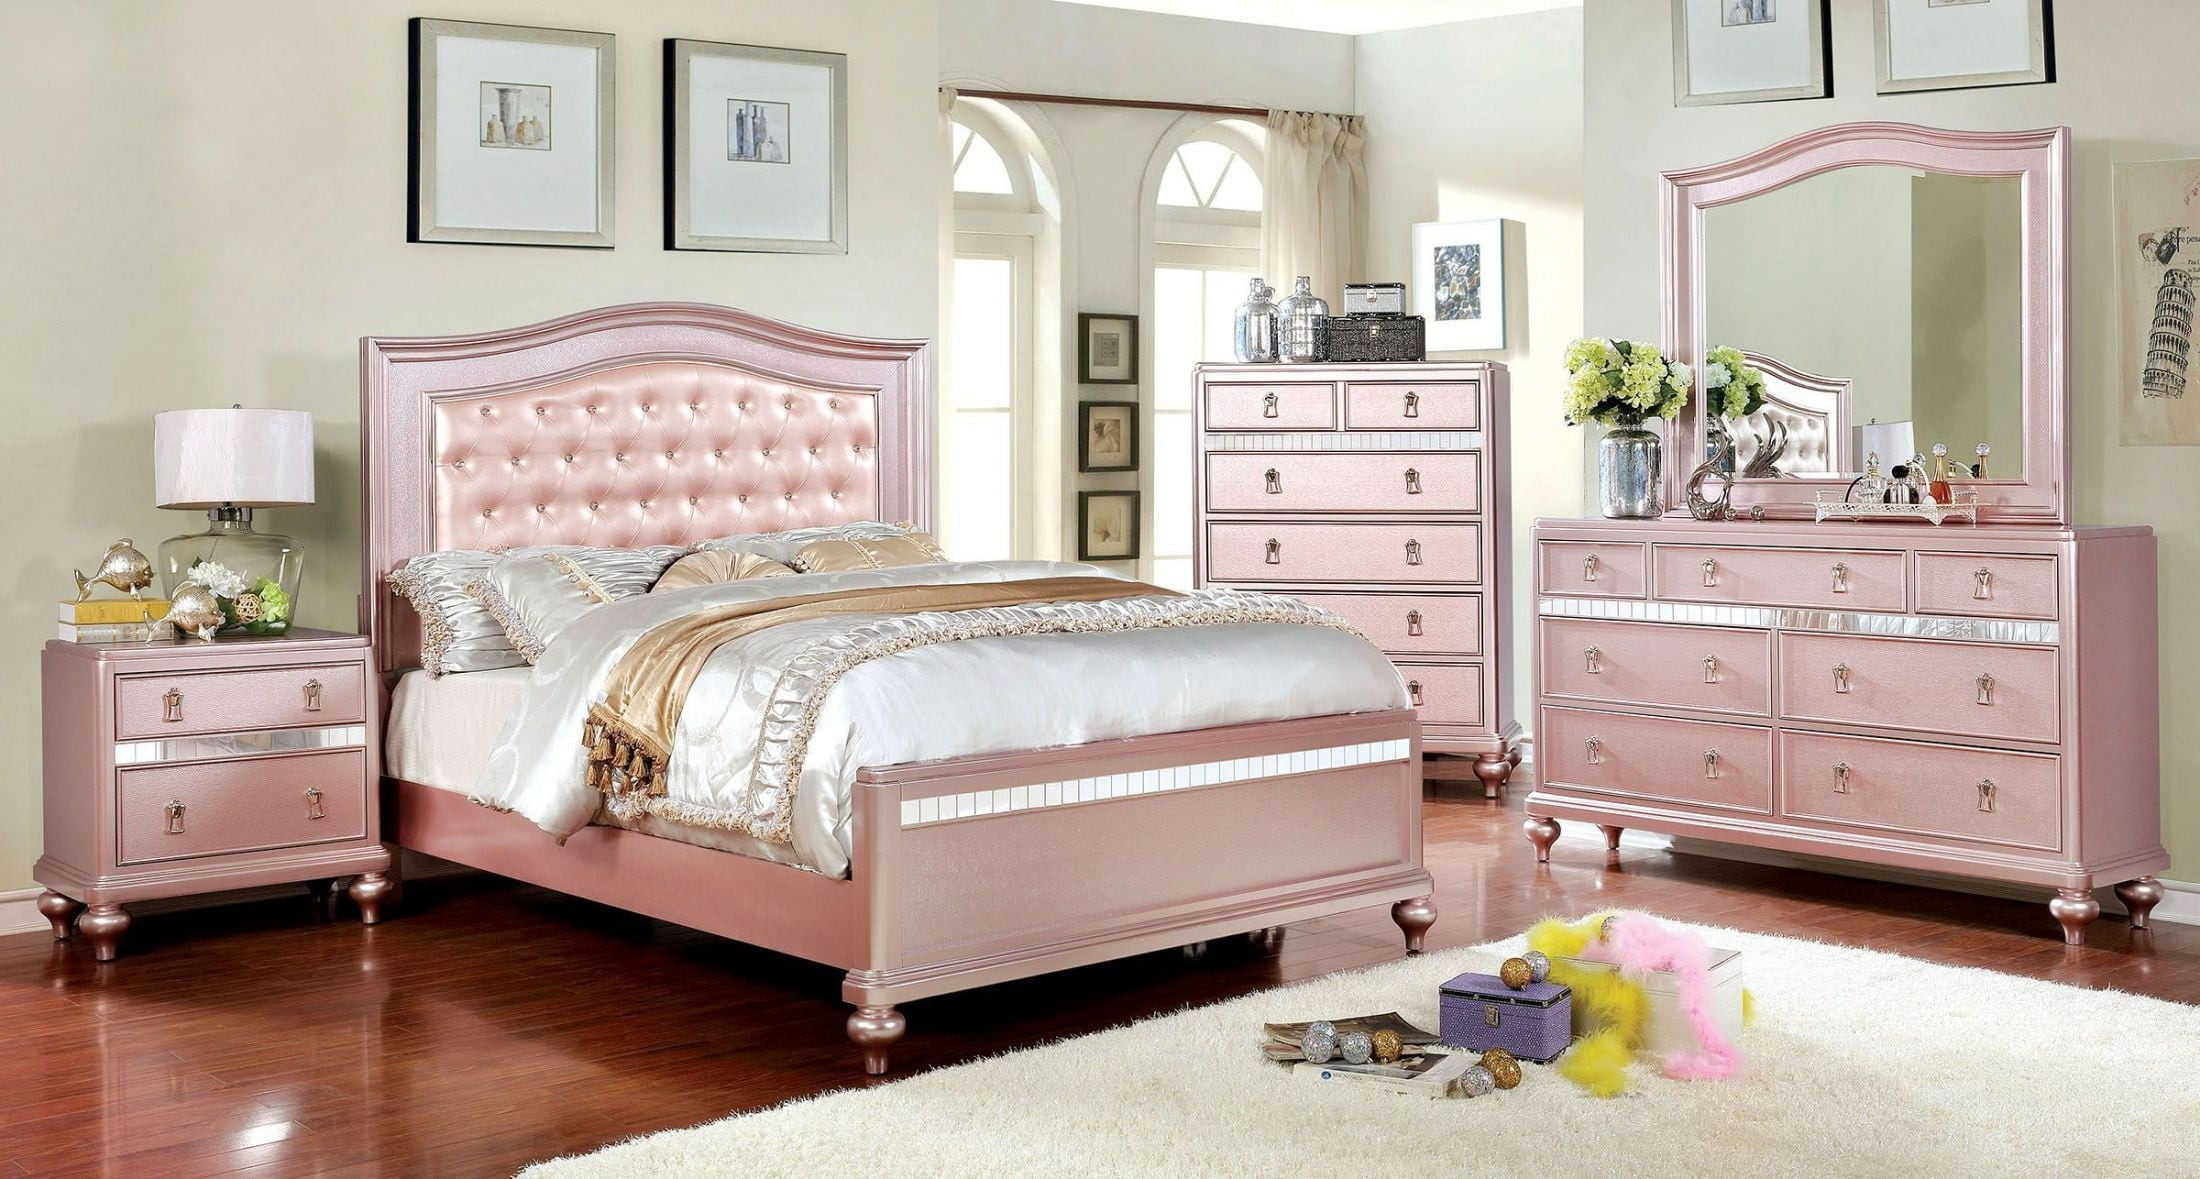 Best ideas about Roses Bedroom Set . Save or Pin Ariston Rose Gold Youth Upholstered Panel Bedroom Set from Now.